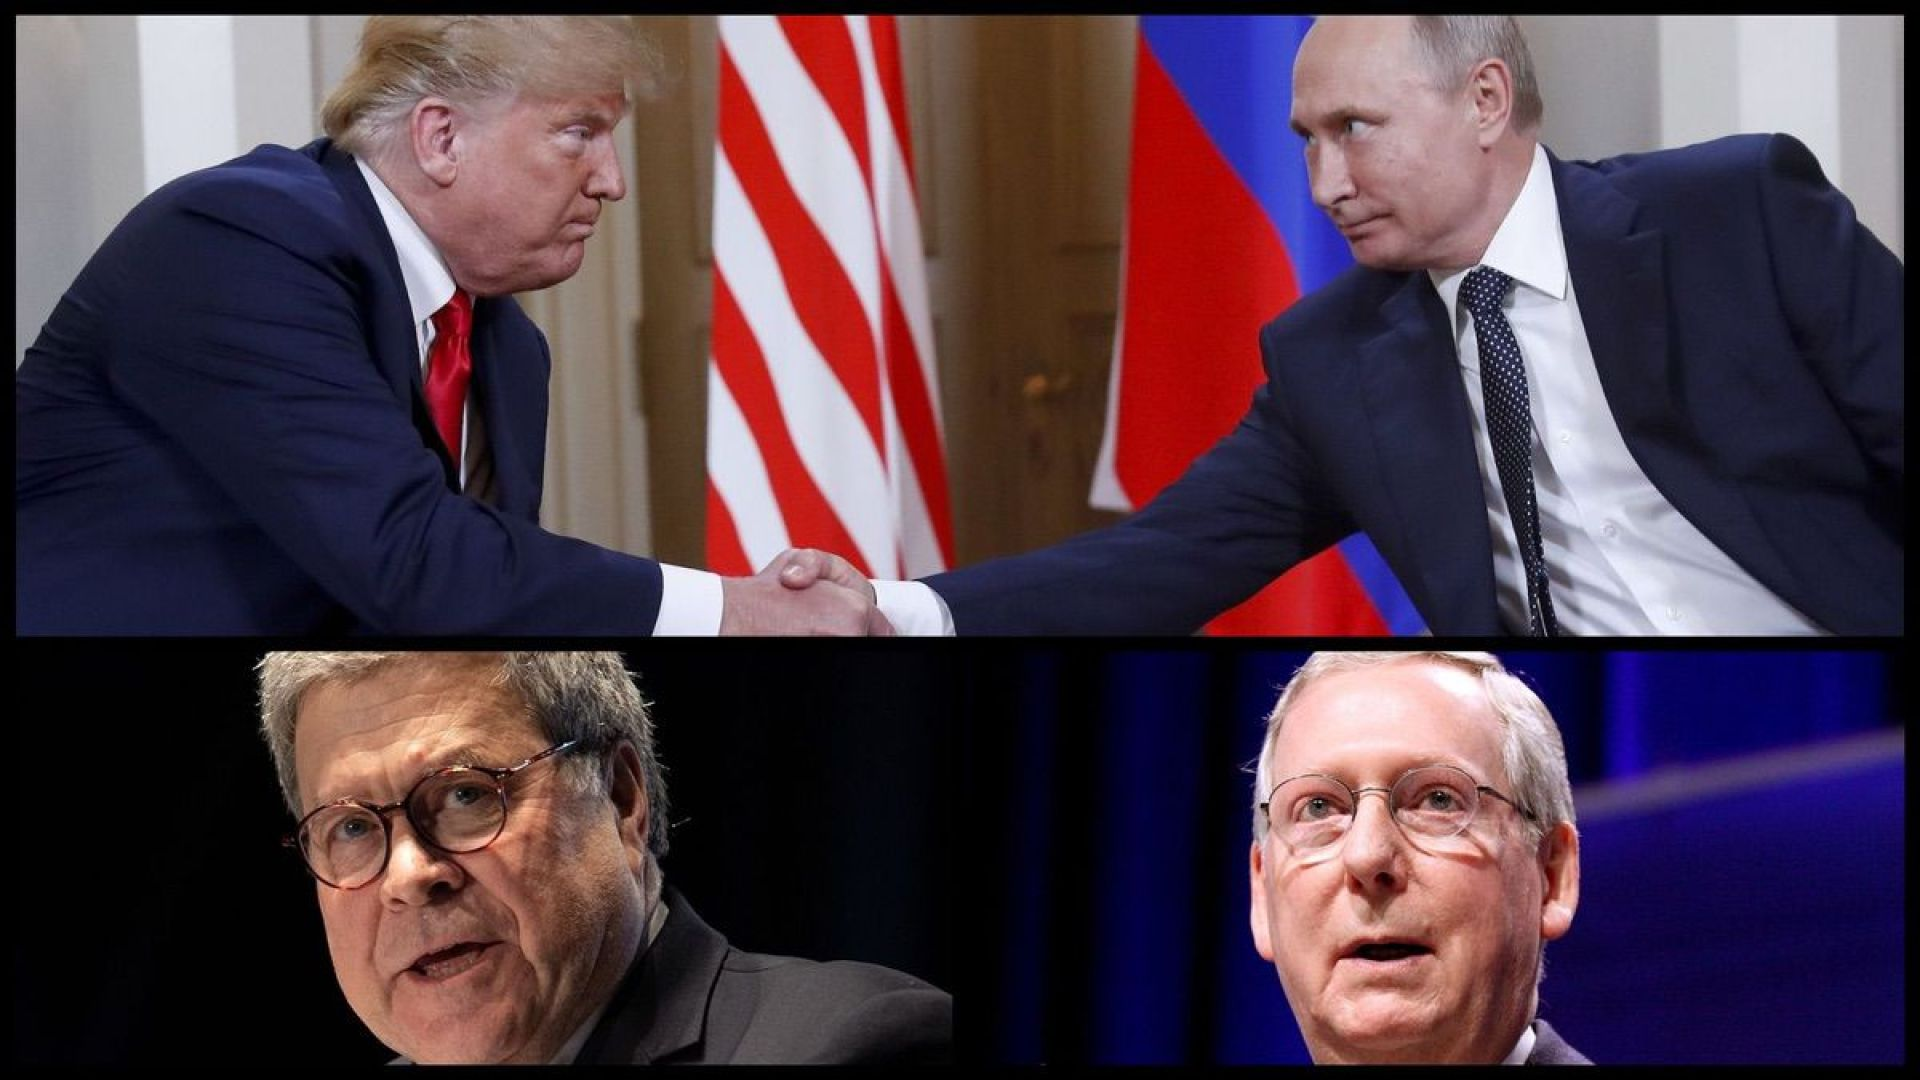 Top from left: President Trump shakes Russian President Putin's hand in Helsinki, Finland, Monday, July 16, 2018 (AP). Bottom from left: Attorney General William Barr and Senate Majority Leader Mitch McConnell (Wikimedia Commons)